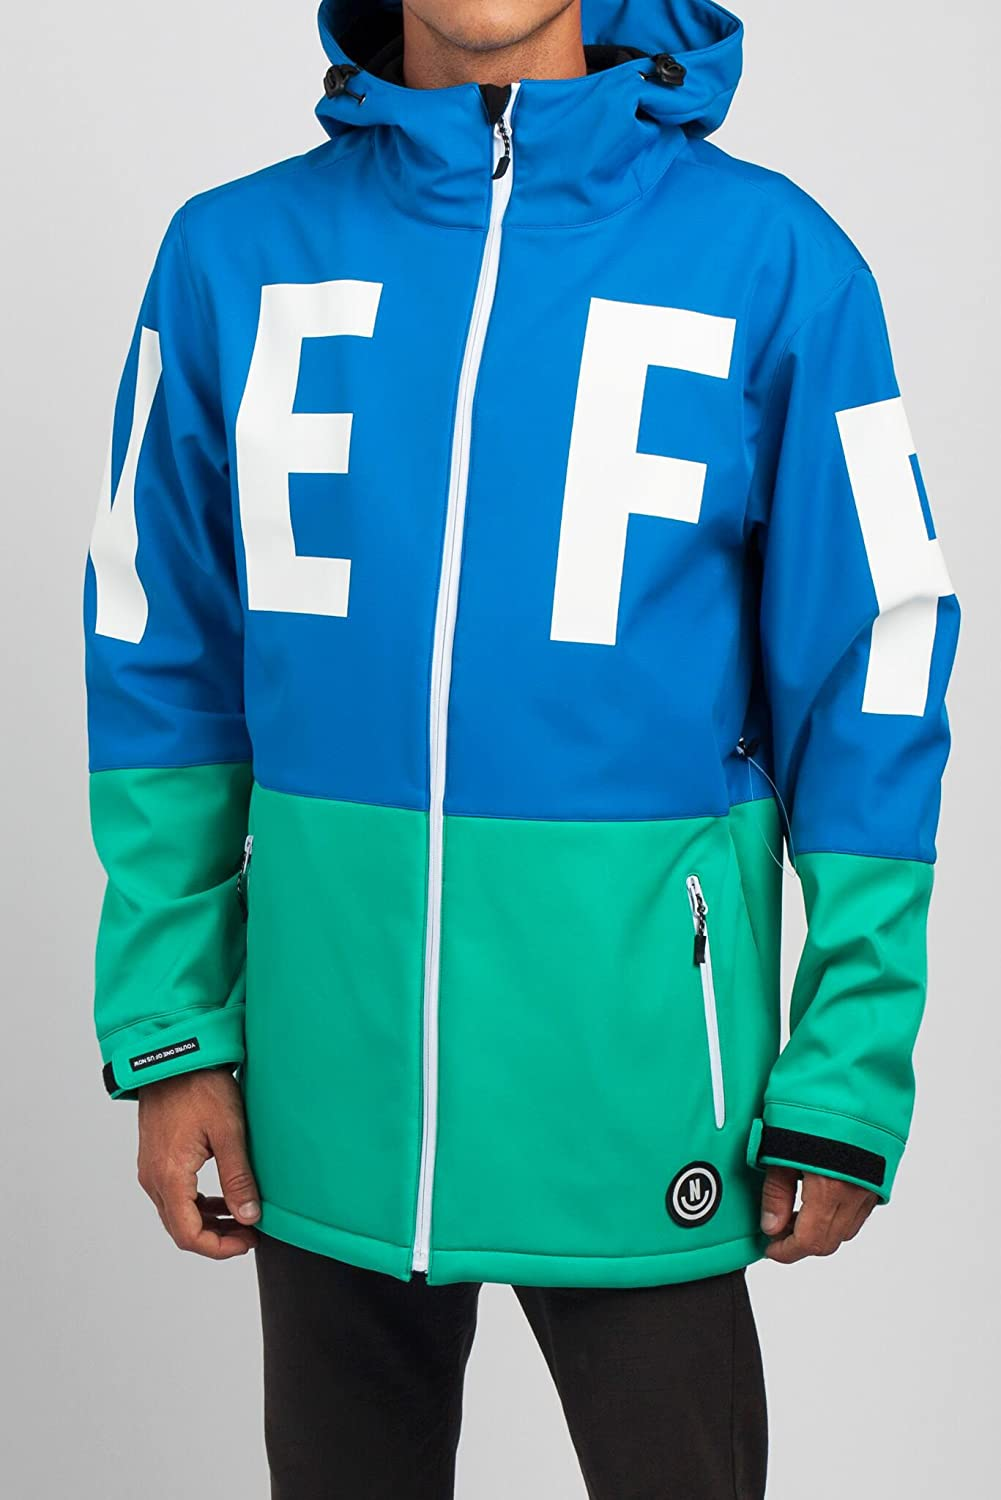 NEFF Men's Daily Softshell Jacket Neff Young Men's 16F62002